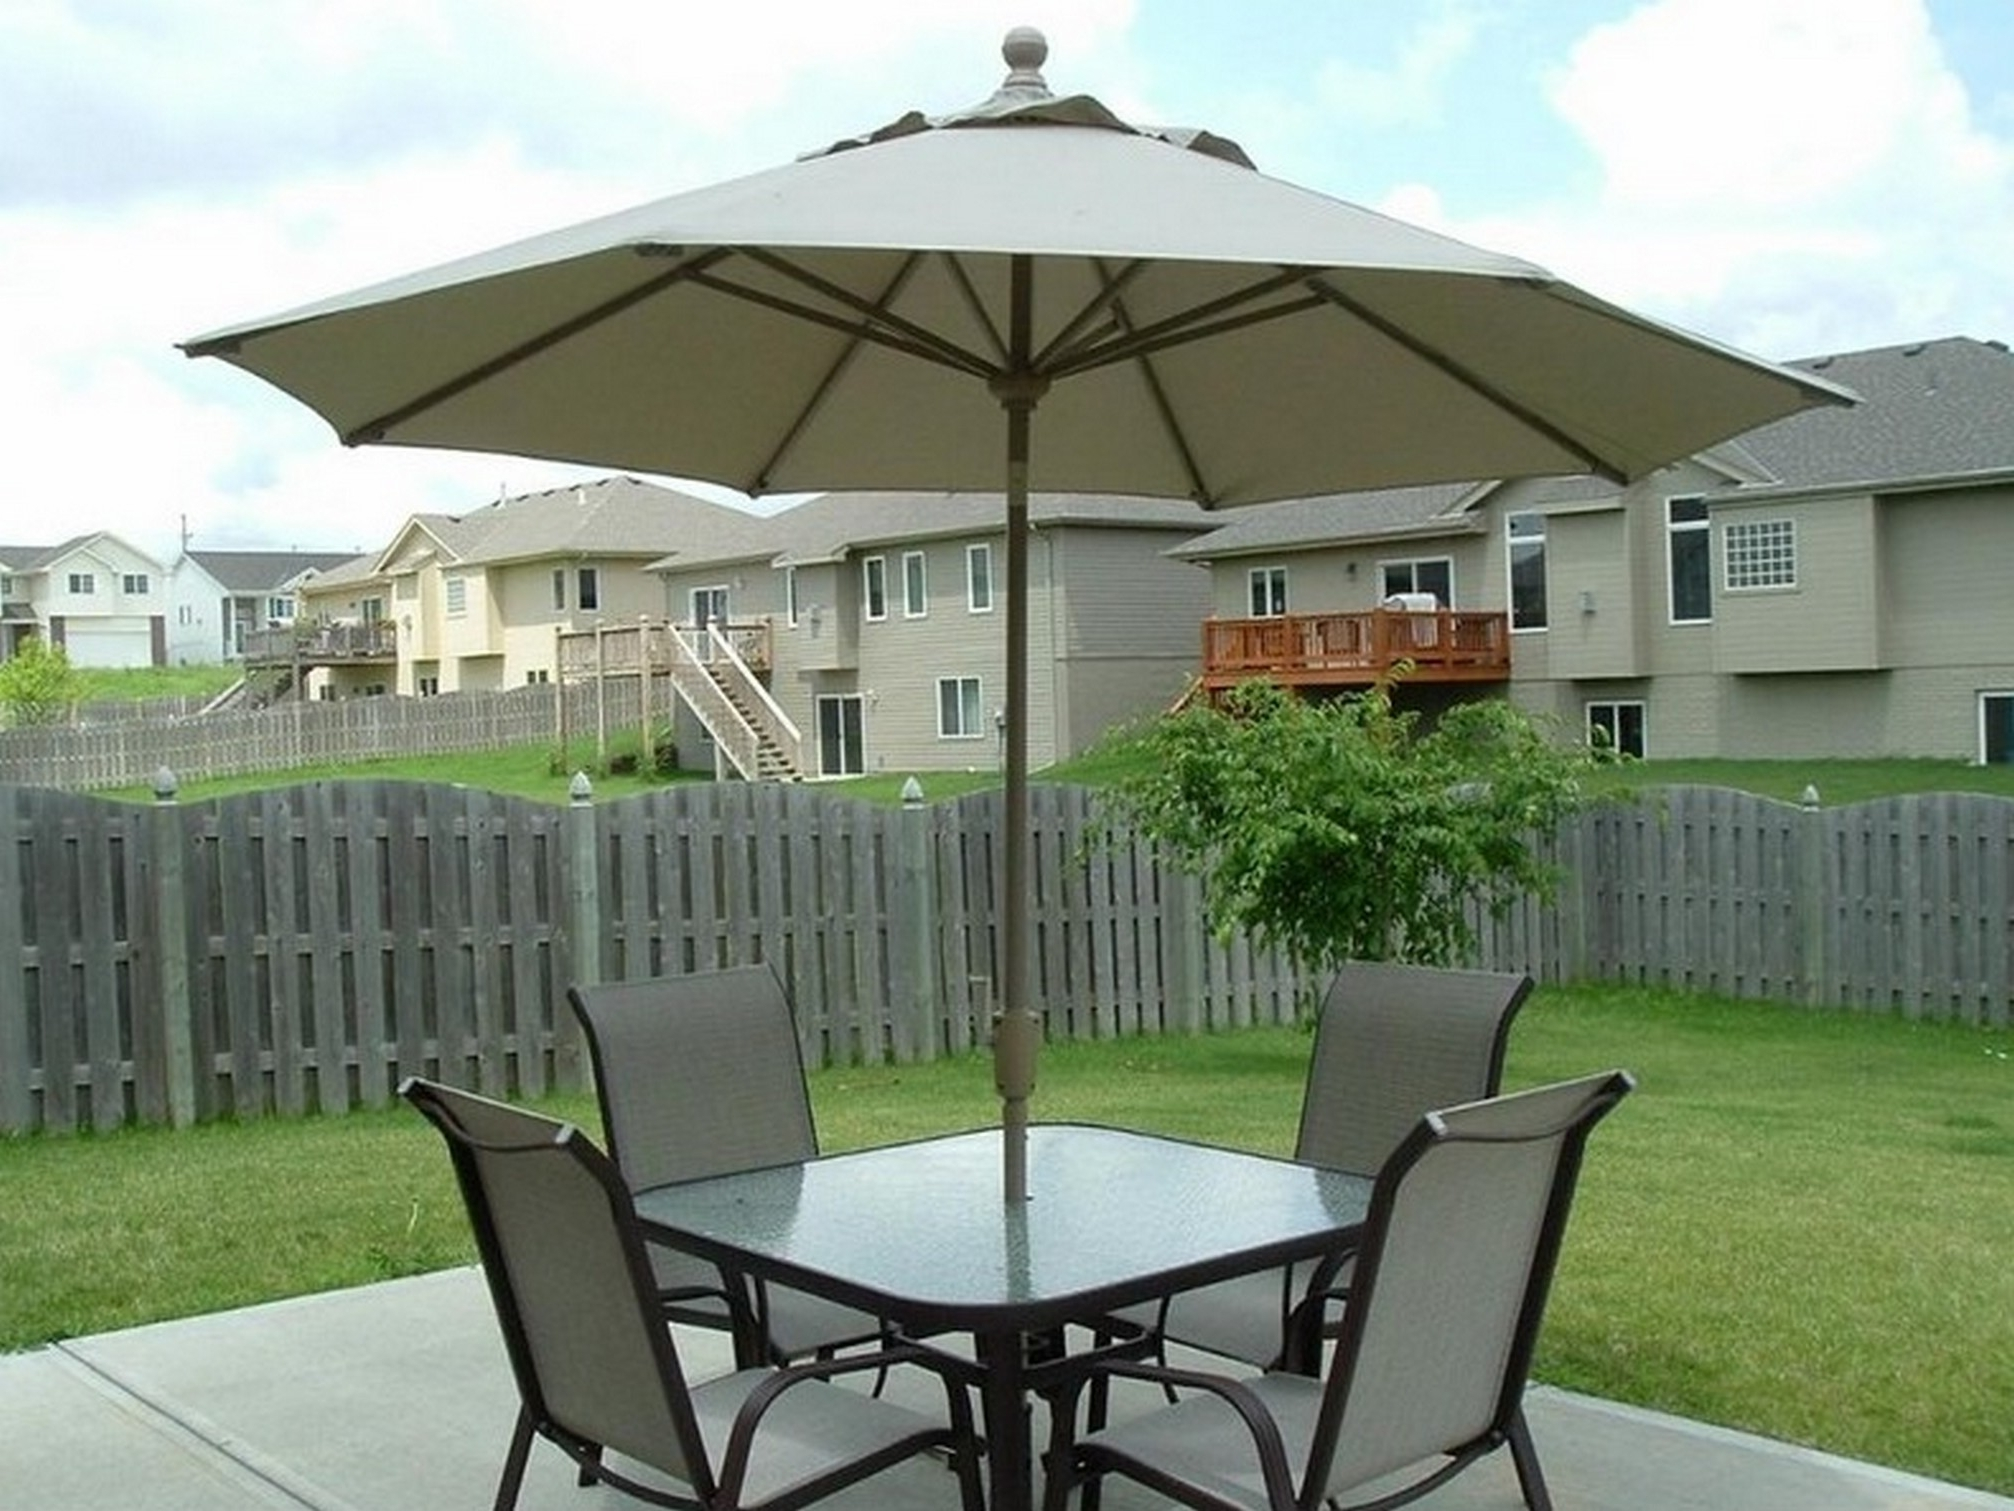 Patio: Astounding Patio Table And Chairs With Umbrella Outdoor Inside Latest Patio Umbrellas For Tables (View 3 of 20)